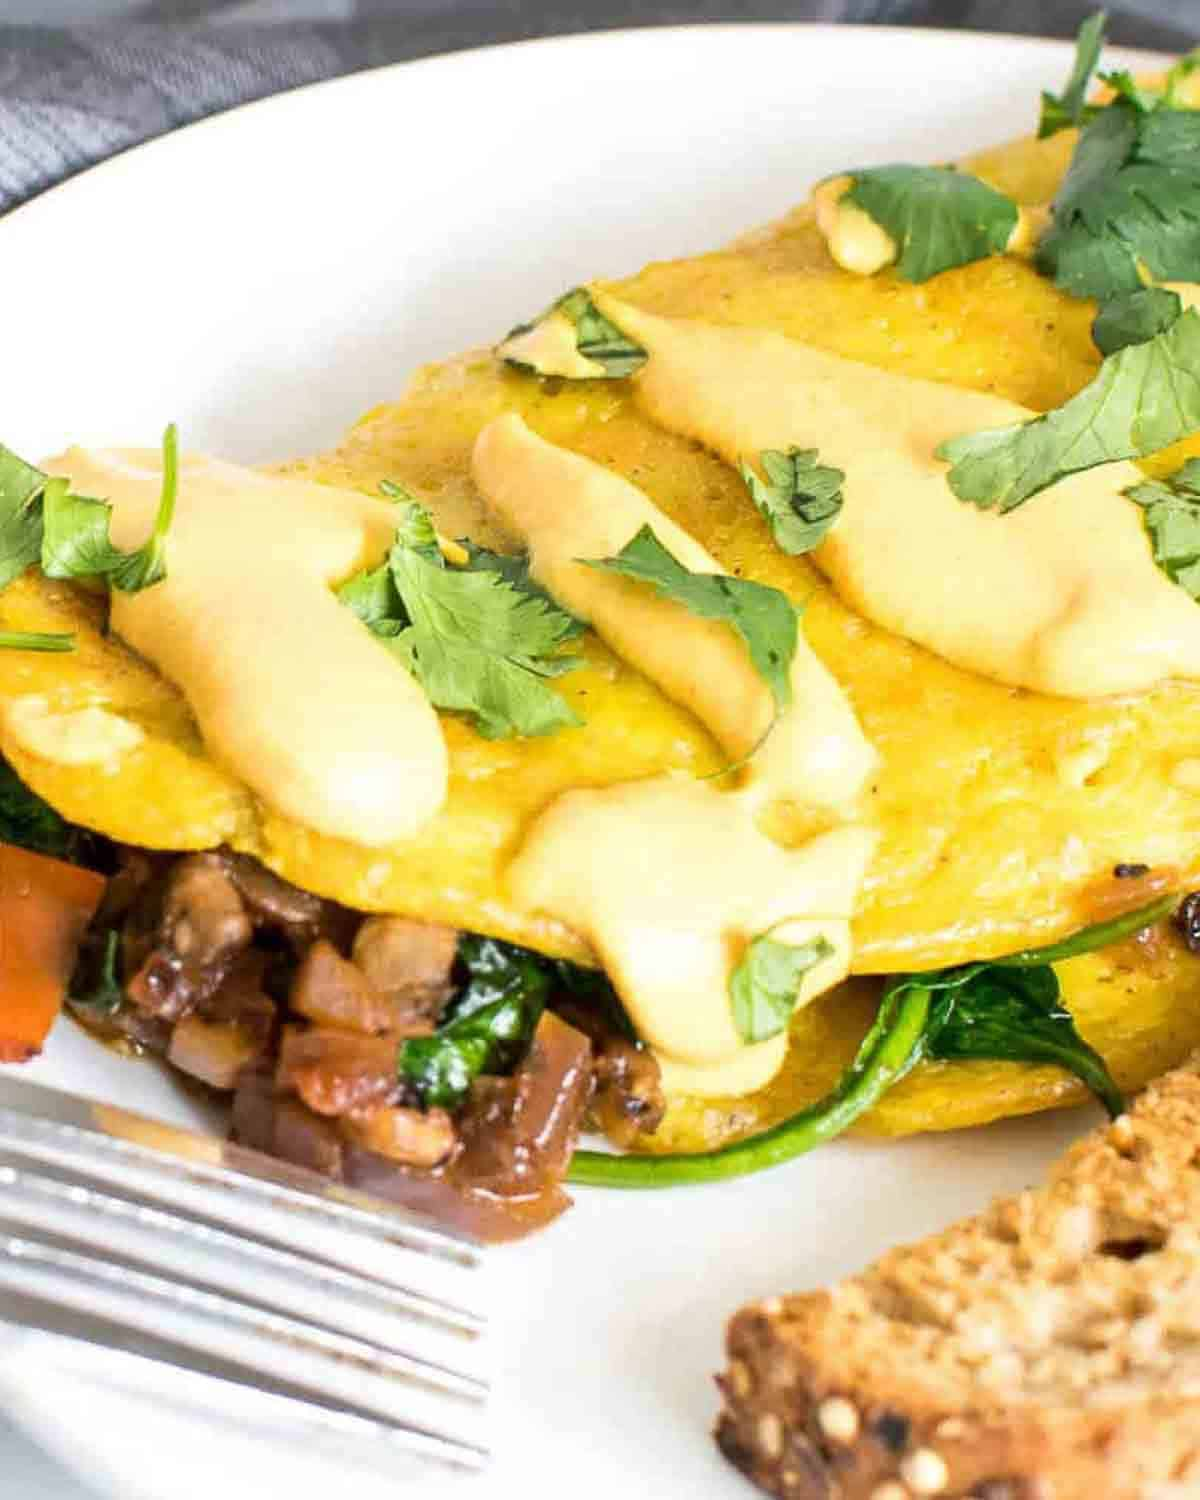 Omelette filled with mushrooms and spinach with a fork.